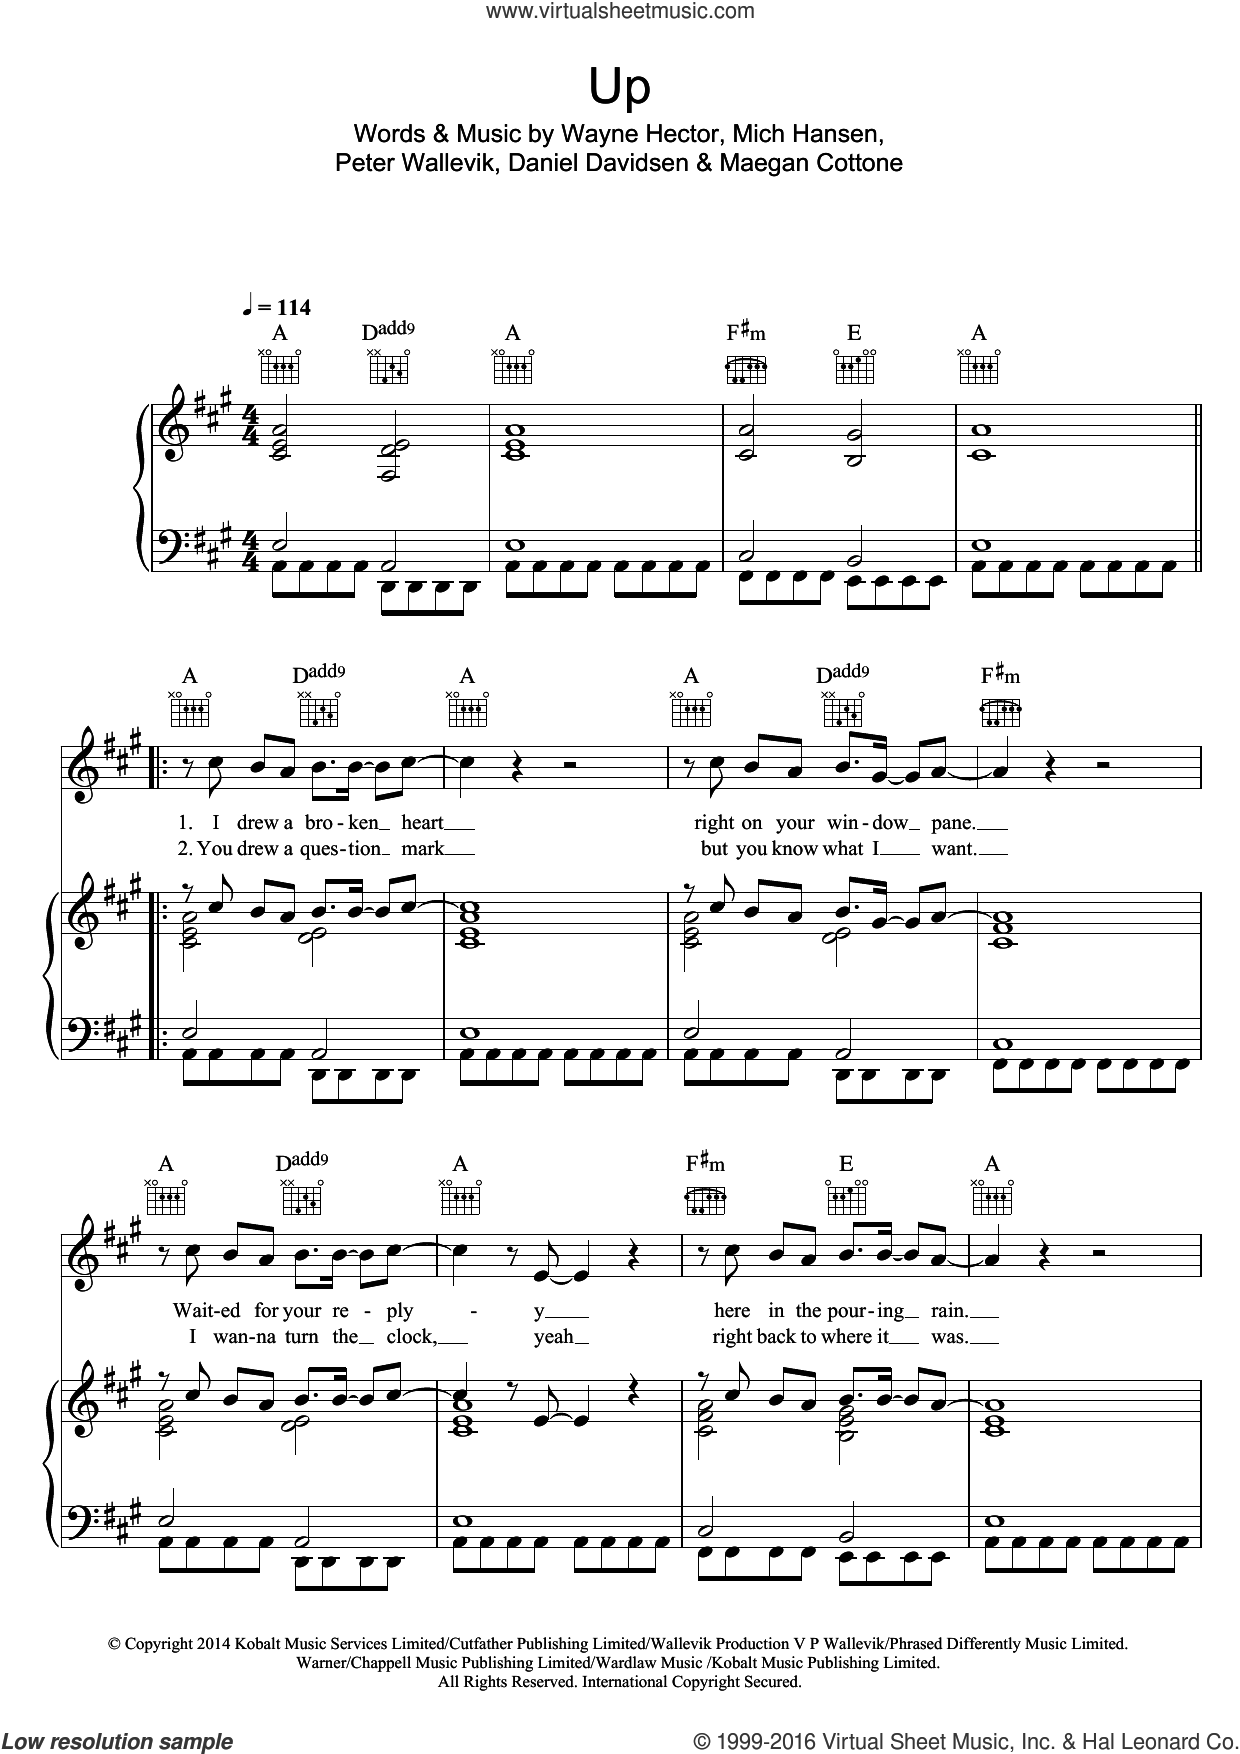 Up (featuring Demi Lovato) sheet music for voice, piano or guitar by Olly Murs, Demi Lovato, Daniel Davidsen, Maegan Cottone, Mich Hansen, Peter Wallevik and Wayne Hector, intermediate skill level